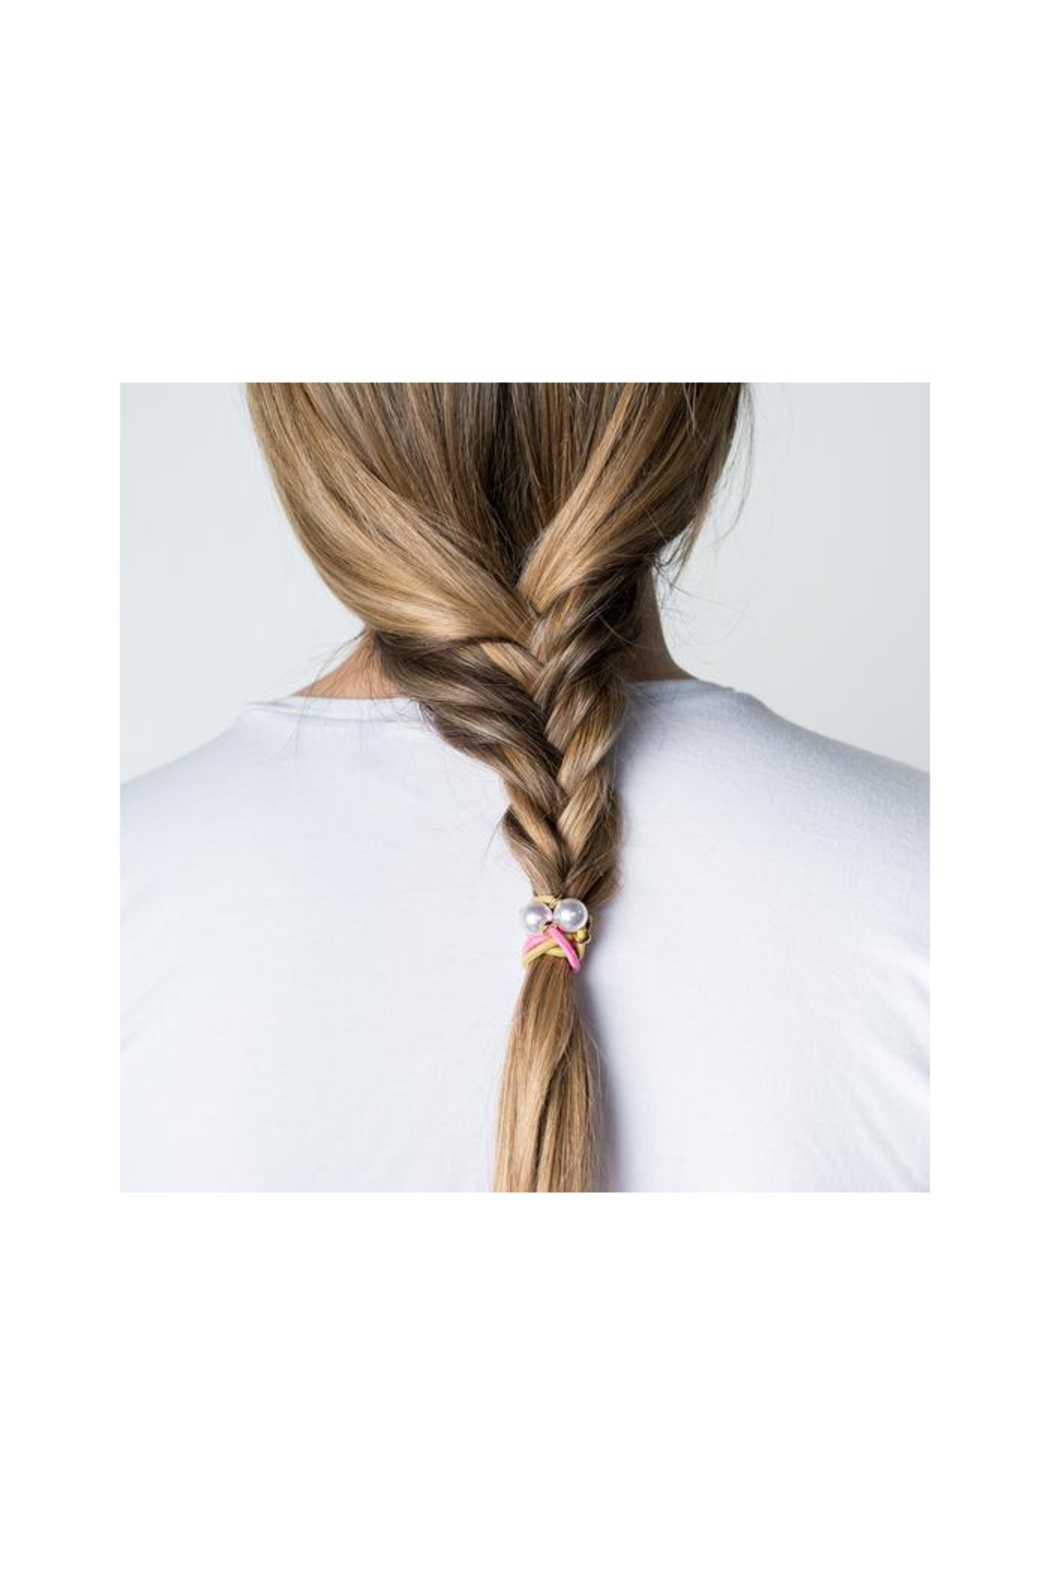 The Birds Nest HALO DISC/PEARL HAIR TIES/BRACELETS - Front Full Image